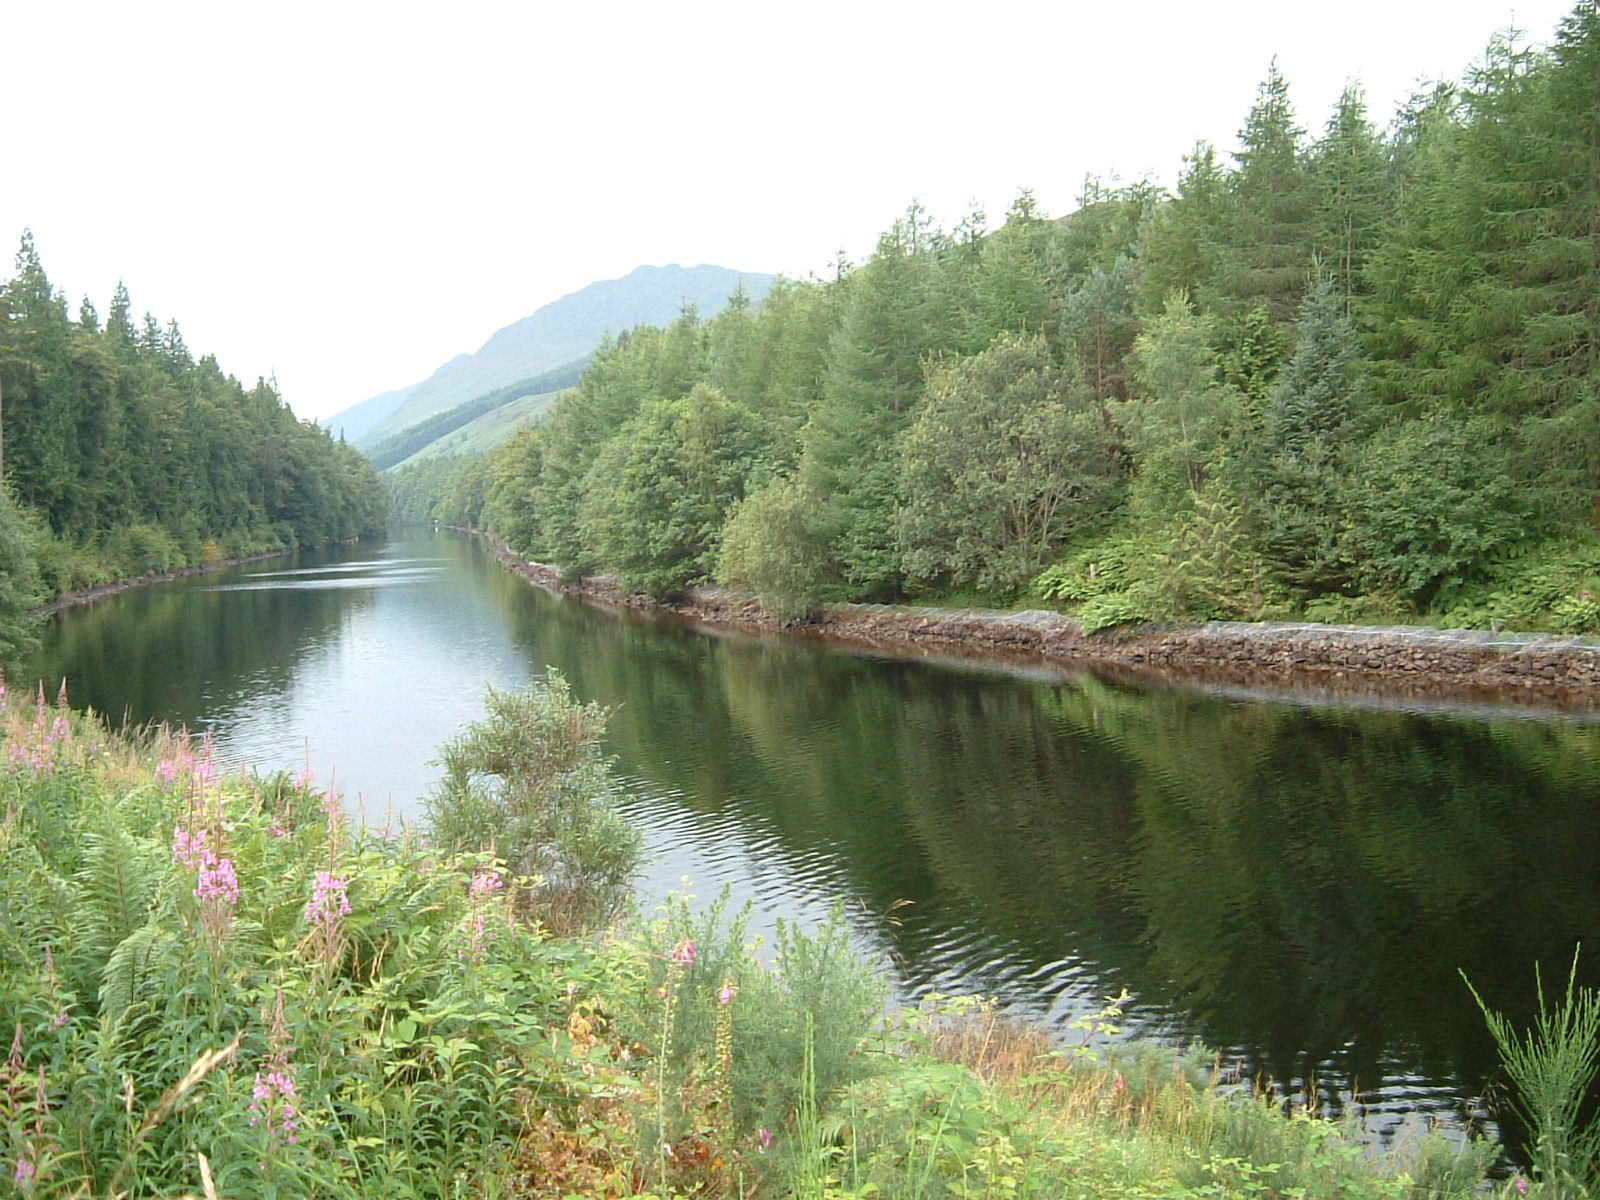 The Caledonian Canal on the approach to South Laggan